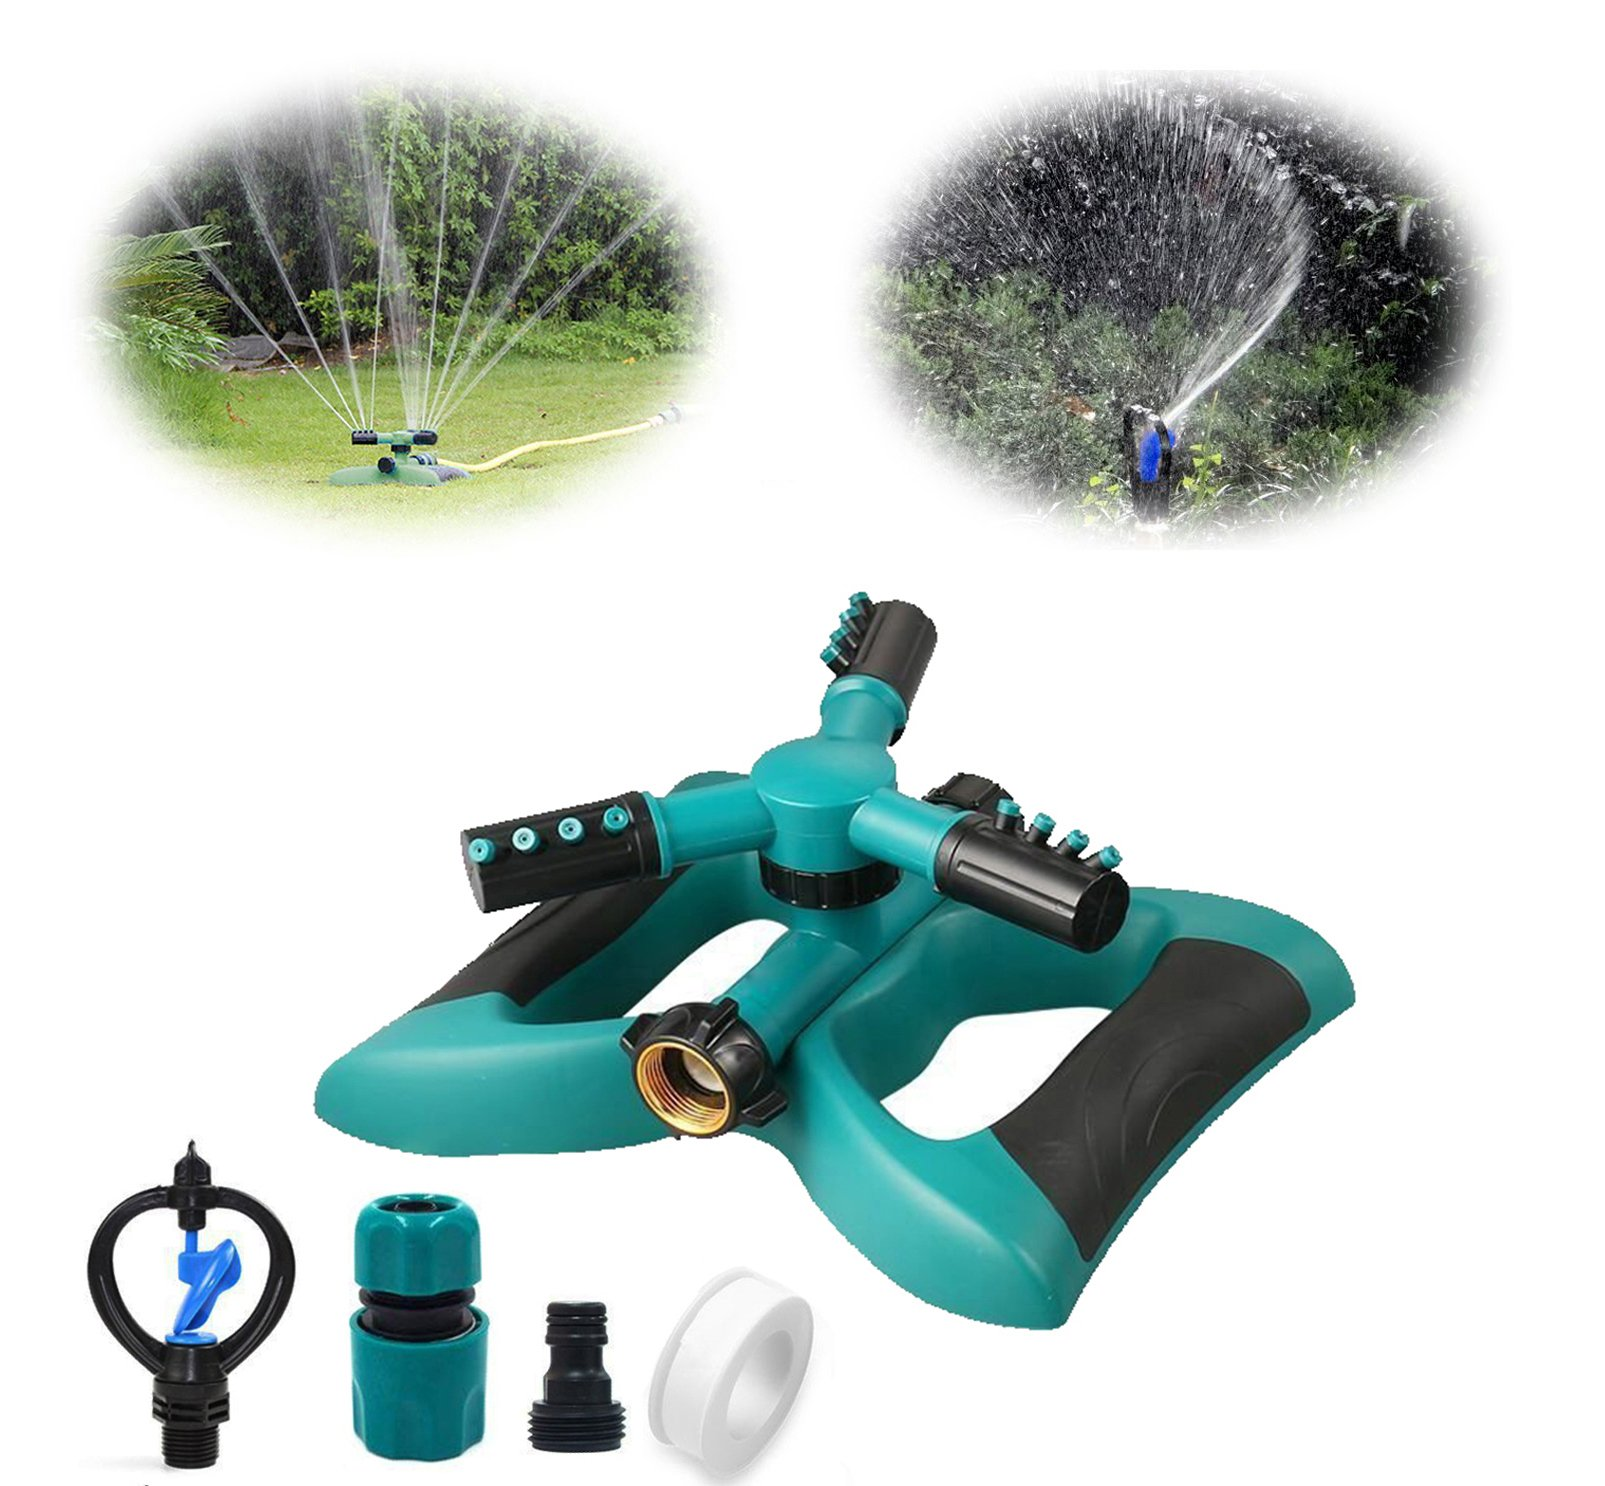 Cybbo Lawn Sprinkler, Automatic 360 Rotating Adjustable Garden Water Sprinklers Lawn Irrigation System Covering Large Area with 3 Arm Sprayers and Leak Free Durable (lawn-sprinkler-Yixin)